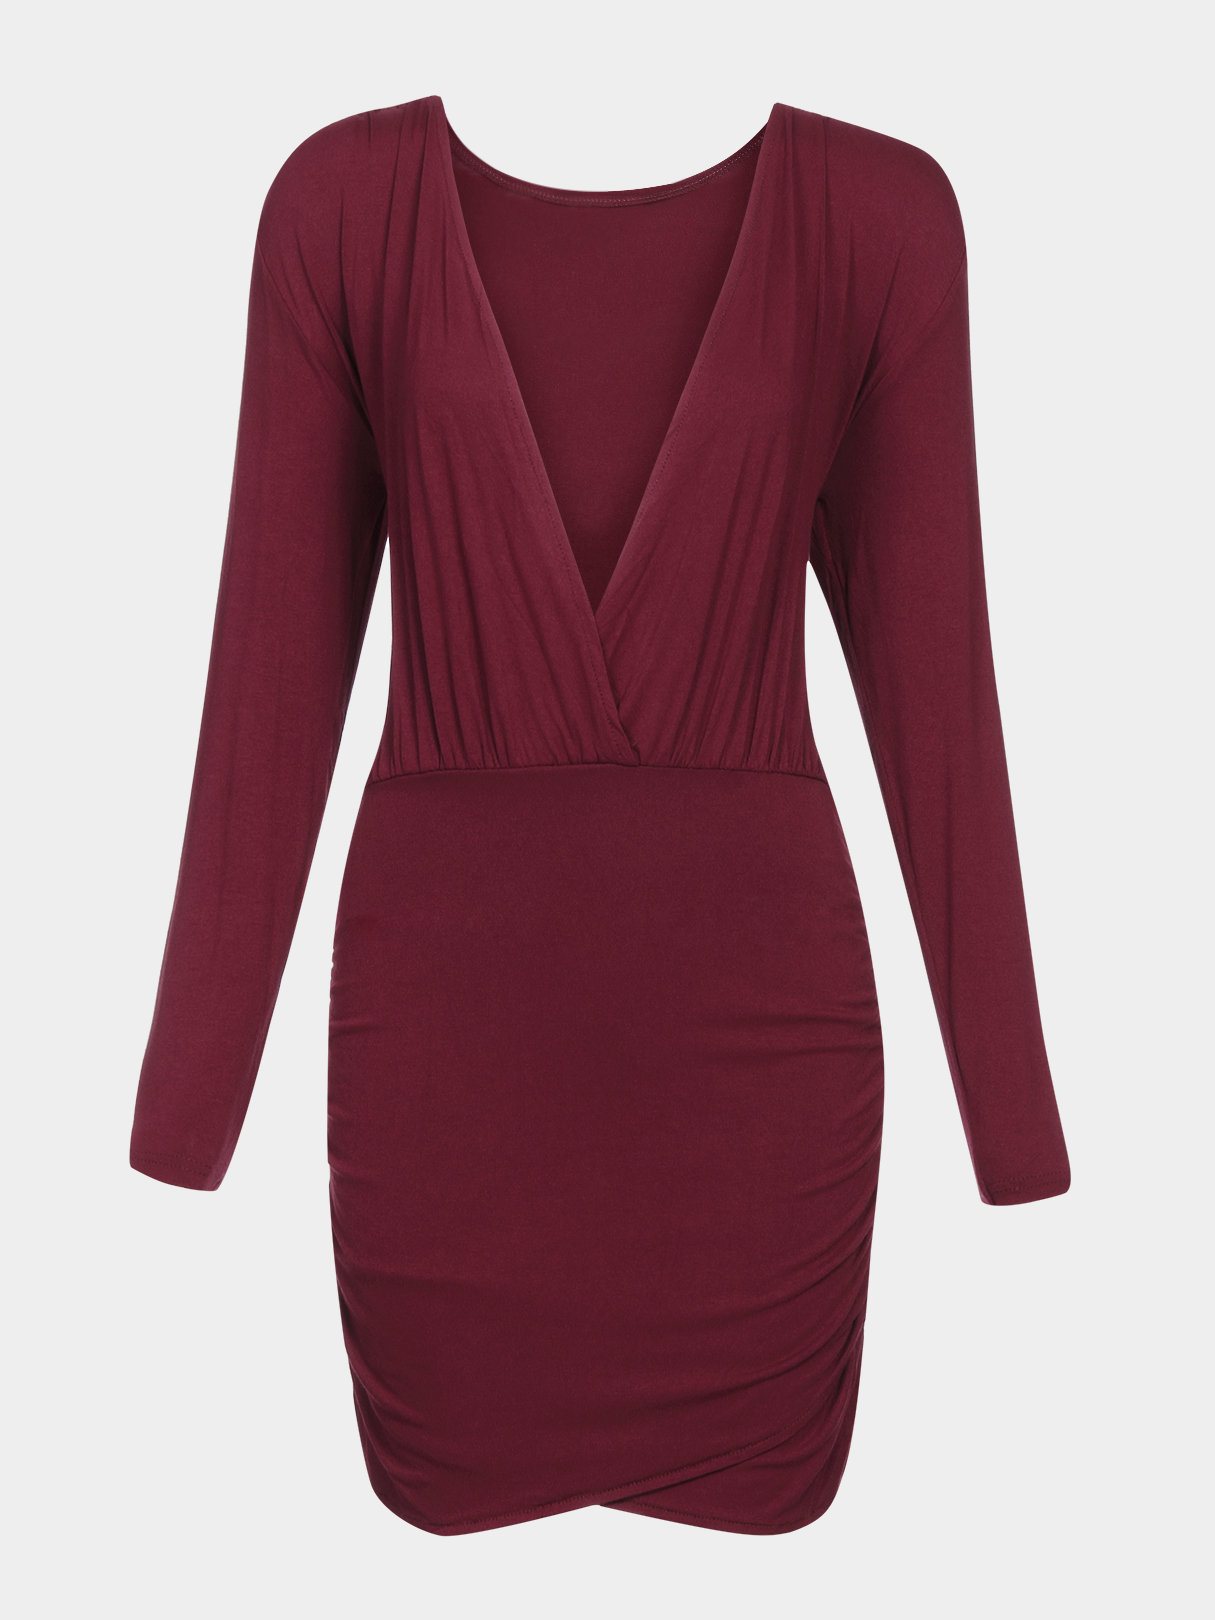 Red Plunging V-neck Wrap Party Dress